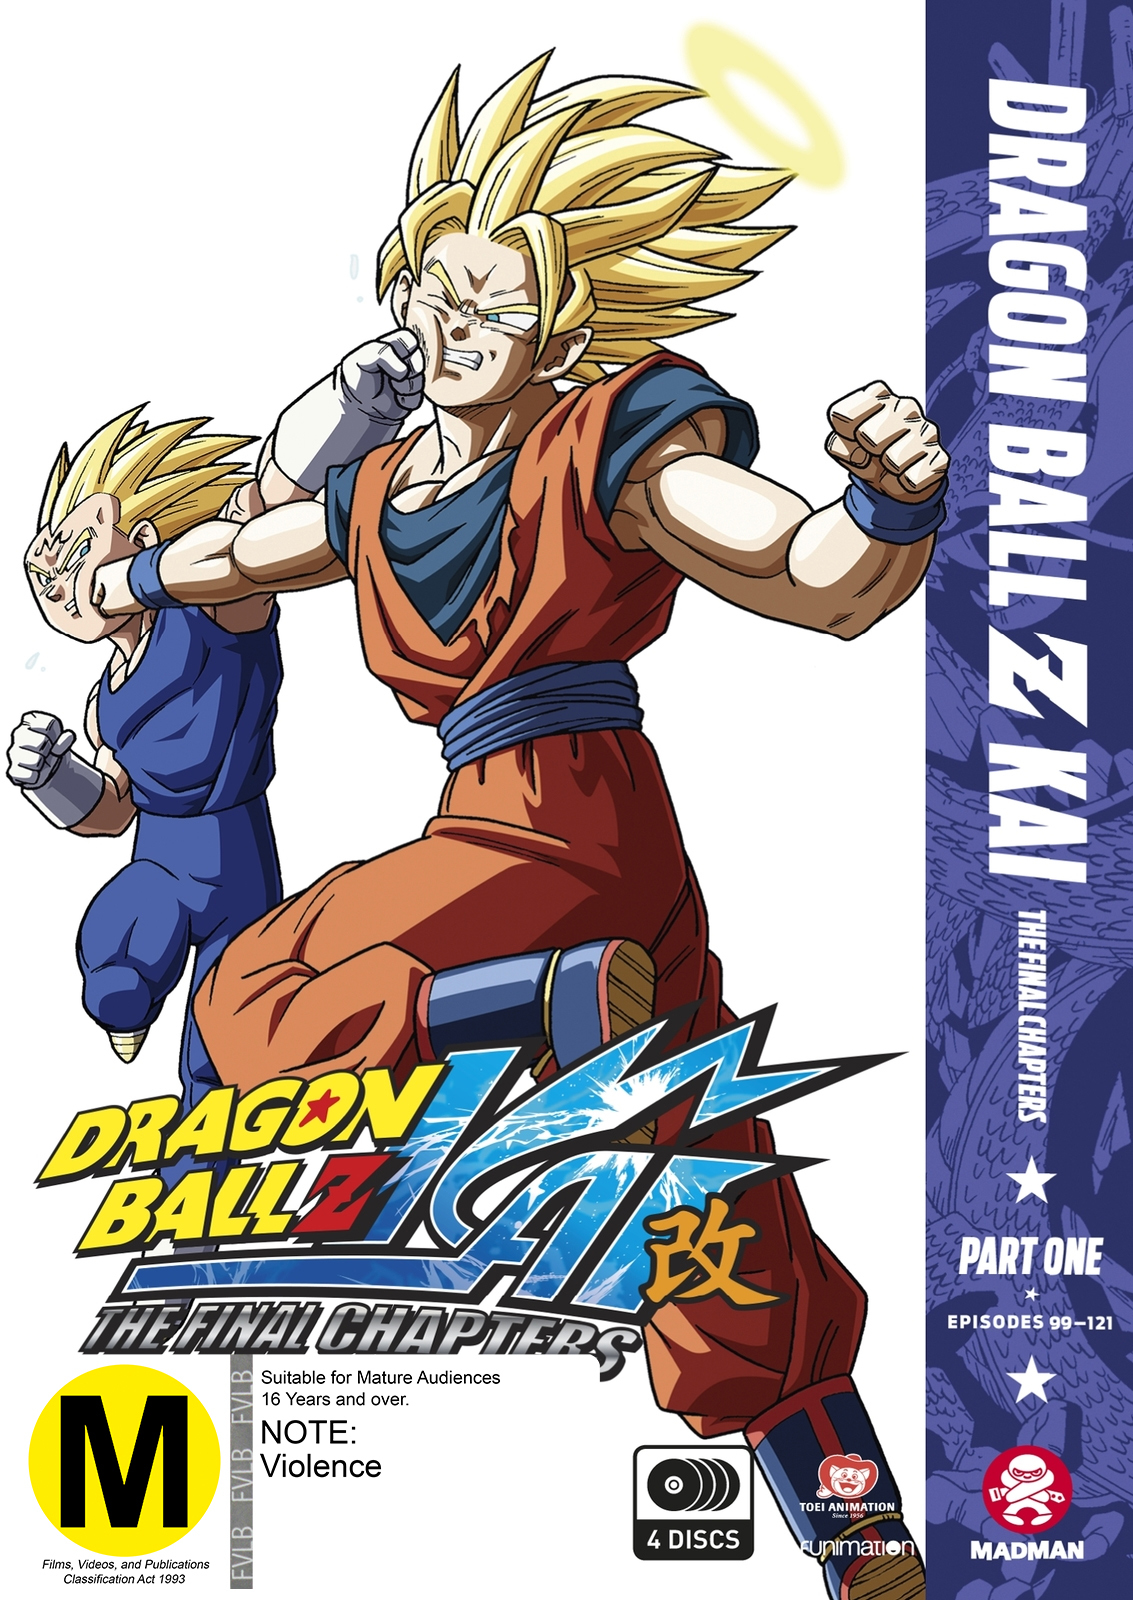 Dragon Ball Z Kai: The Final Chapters Part 1 (eps 1-23) on DVD image